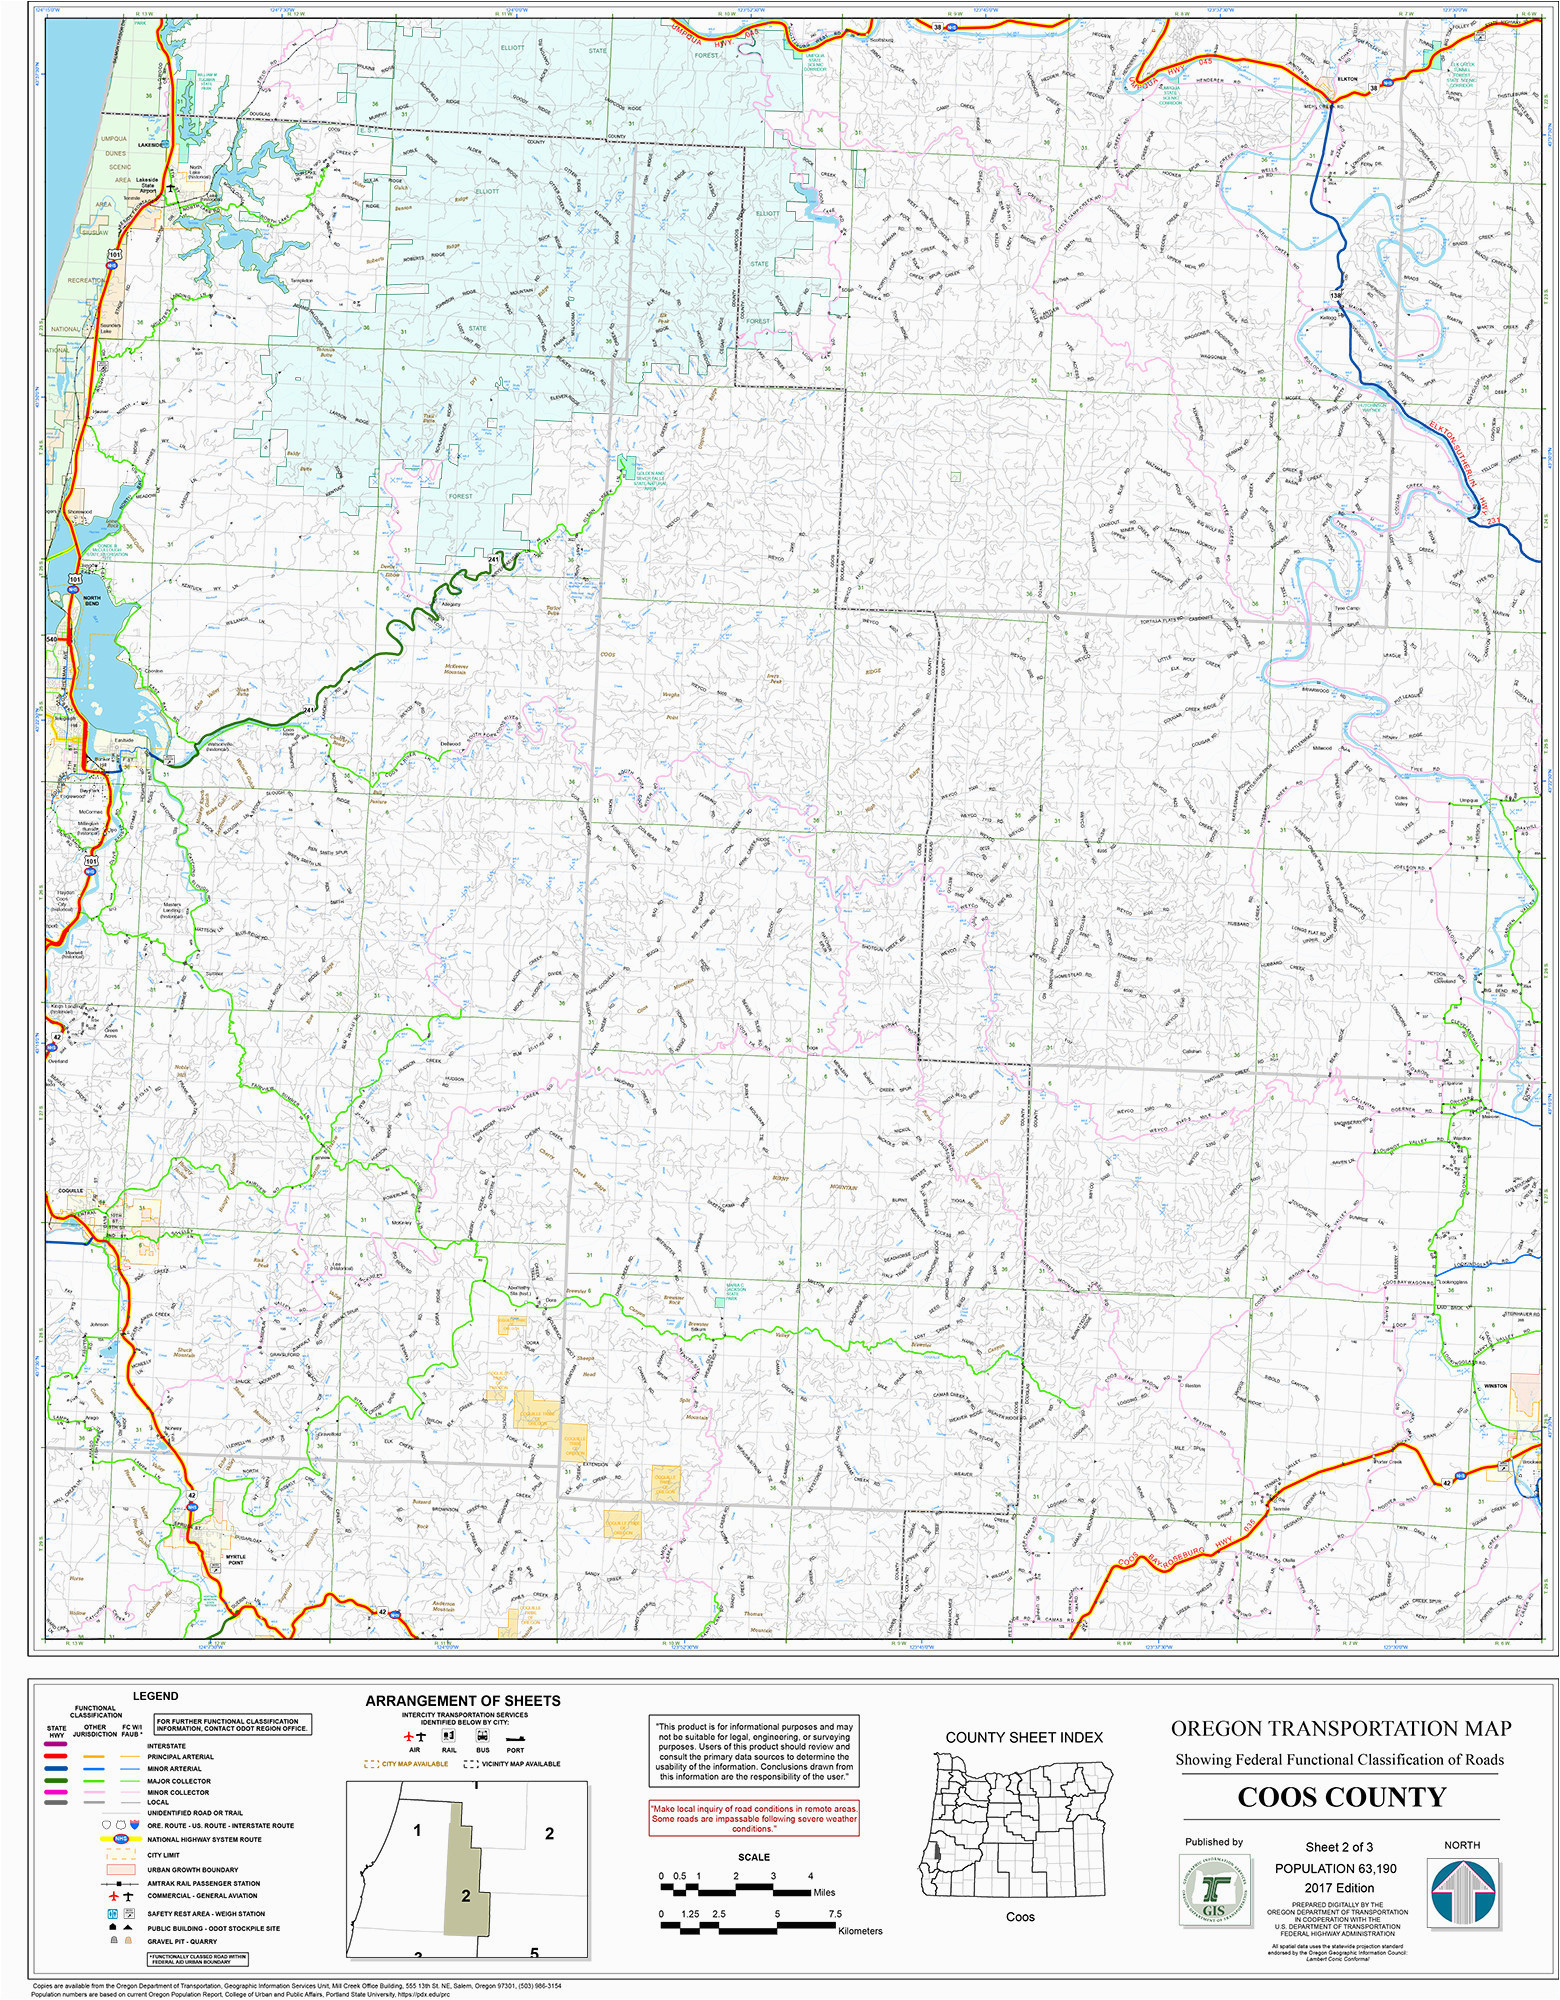 State Of Georgia Map With Cities Georgia Lakes Map Luxury Usa Rivers - Map-of-the-us-rivers-and-lakes